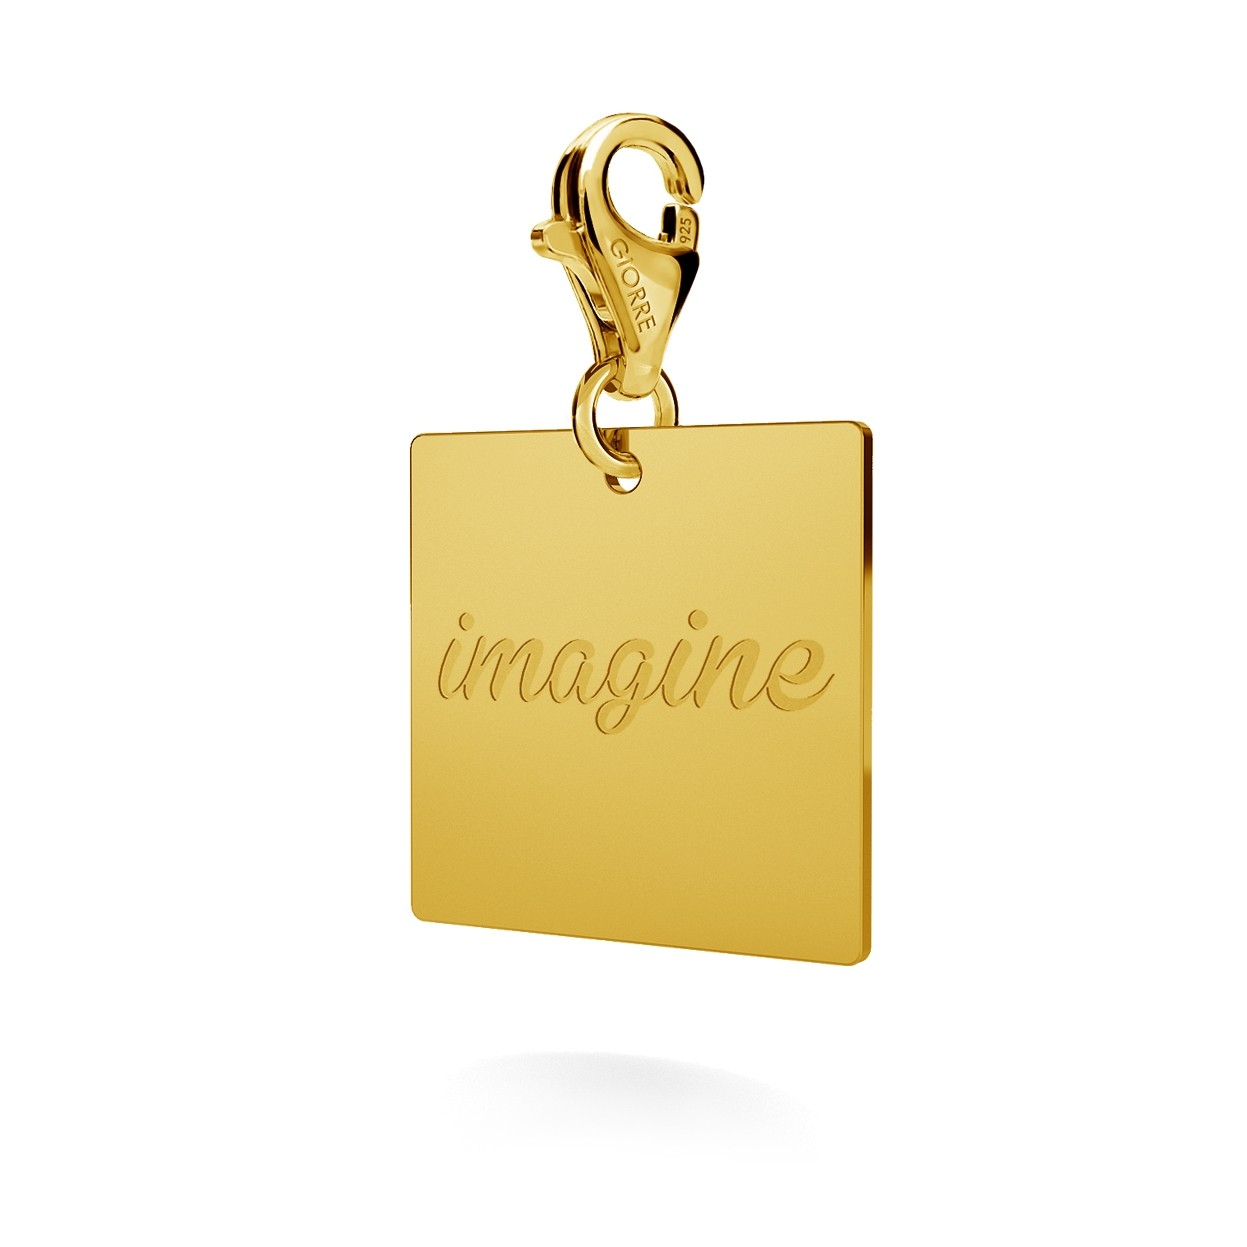 CHARM WITH ENGRAVE, SQUARE, SILVER 925,  RHODIUM OR GOLD PLATED